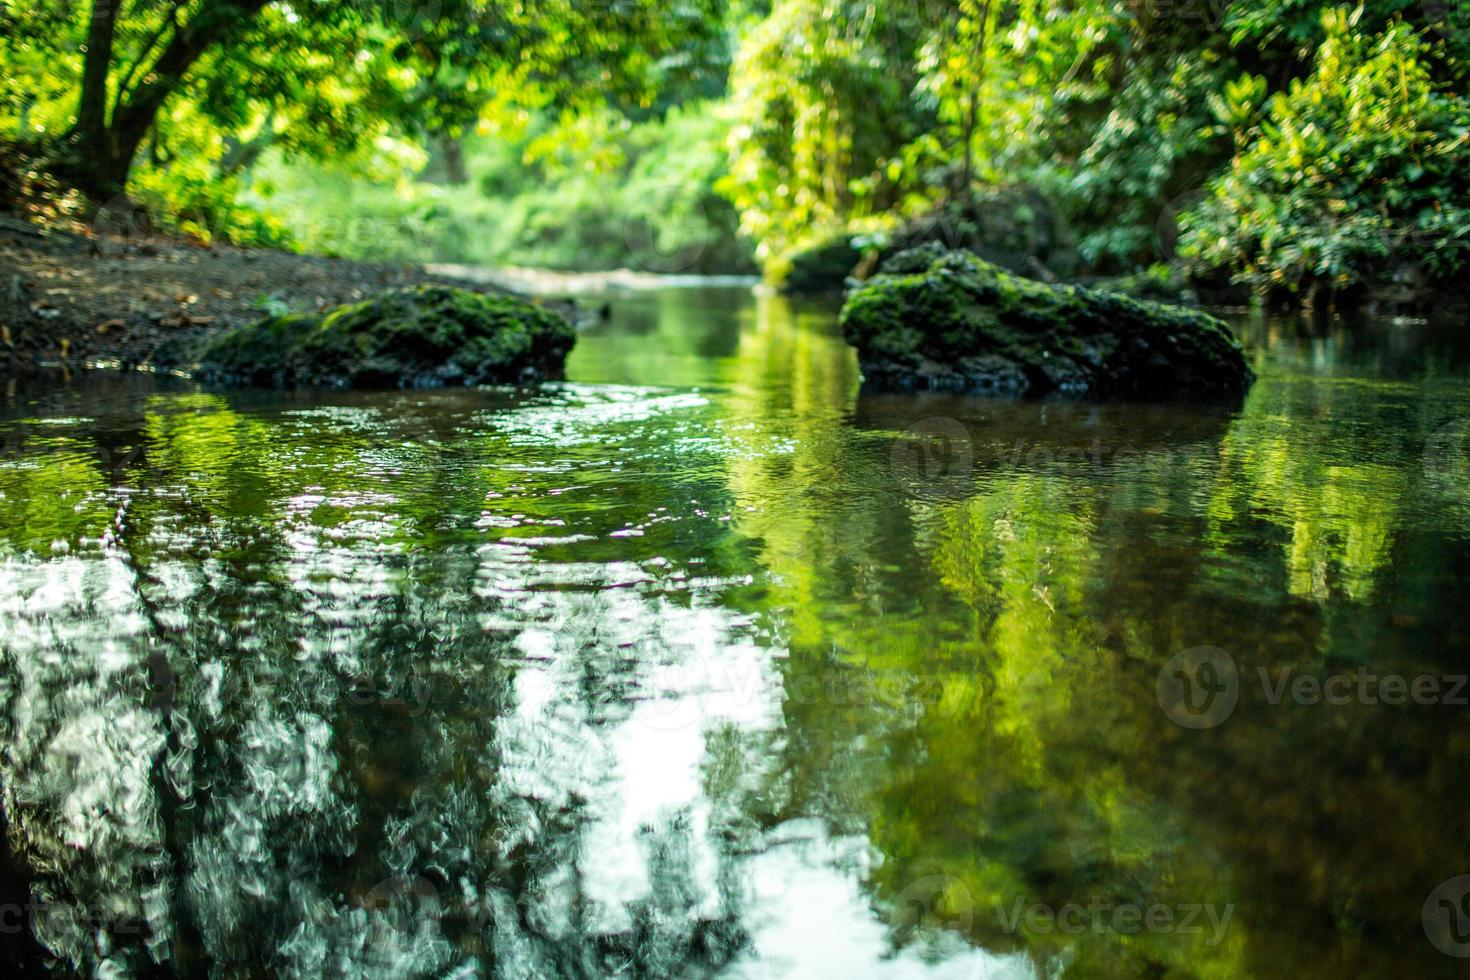 The green view with tranquil moment photo